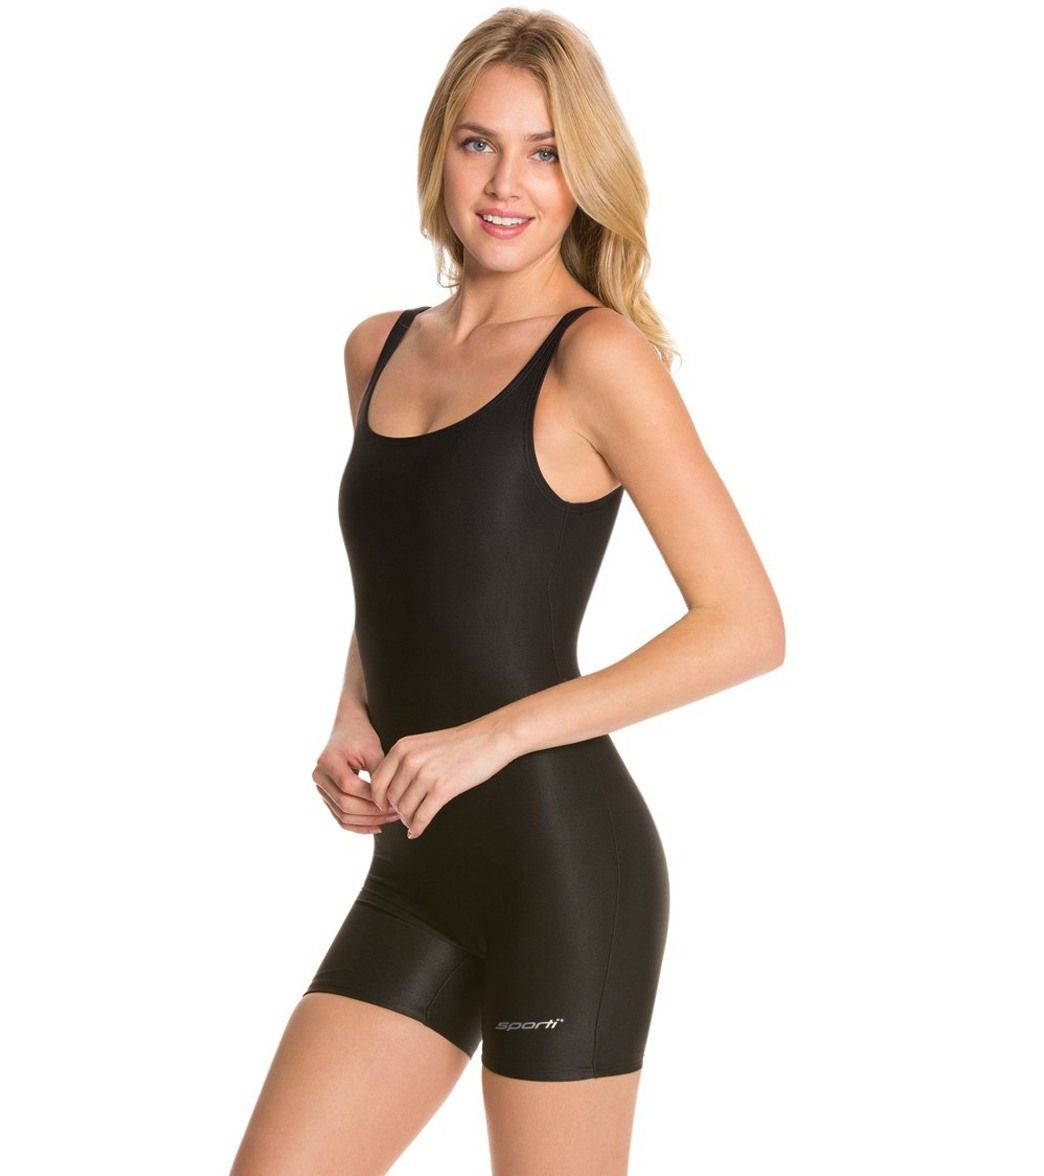 ef5e8527818c Sporti Polyester Solid Fitness One Piece Unitard at SwimOutlet.com - Free  Shipping